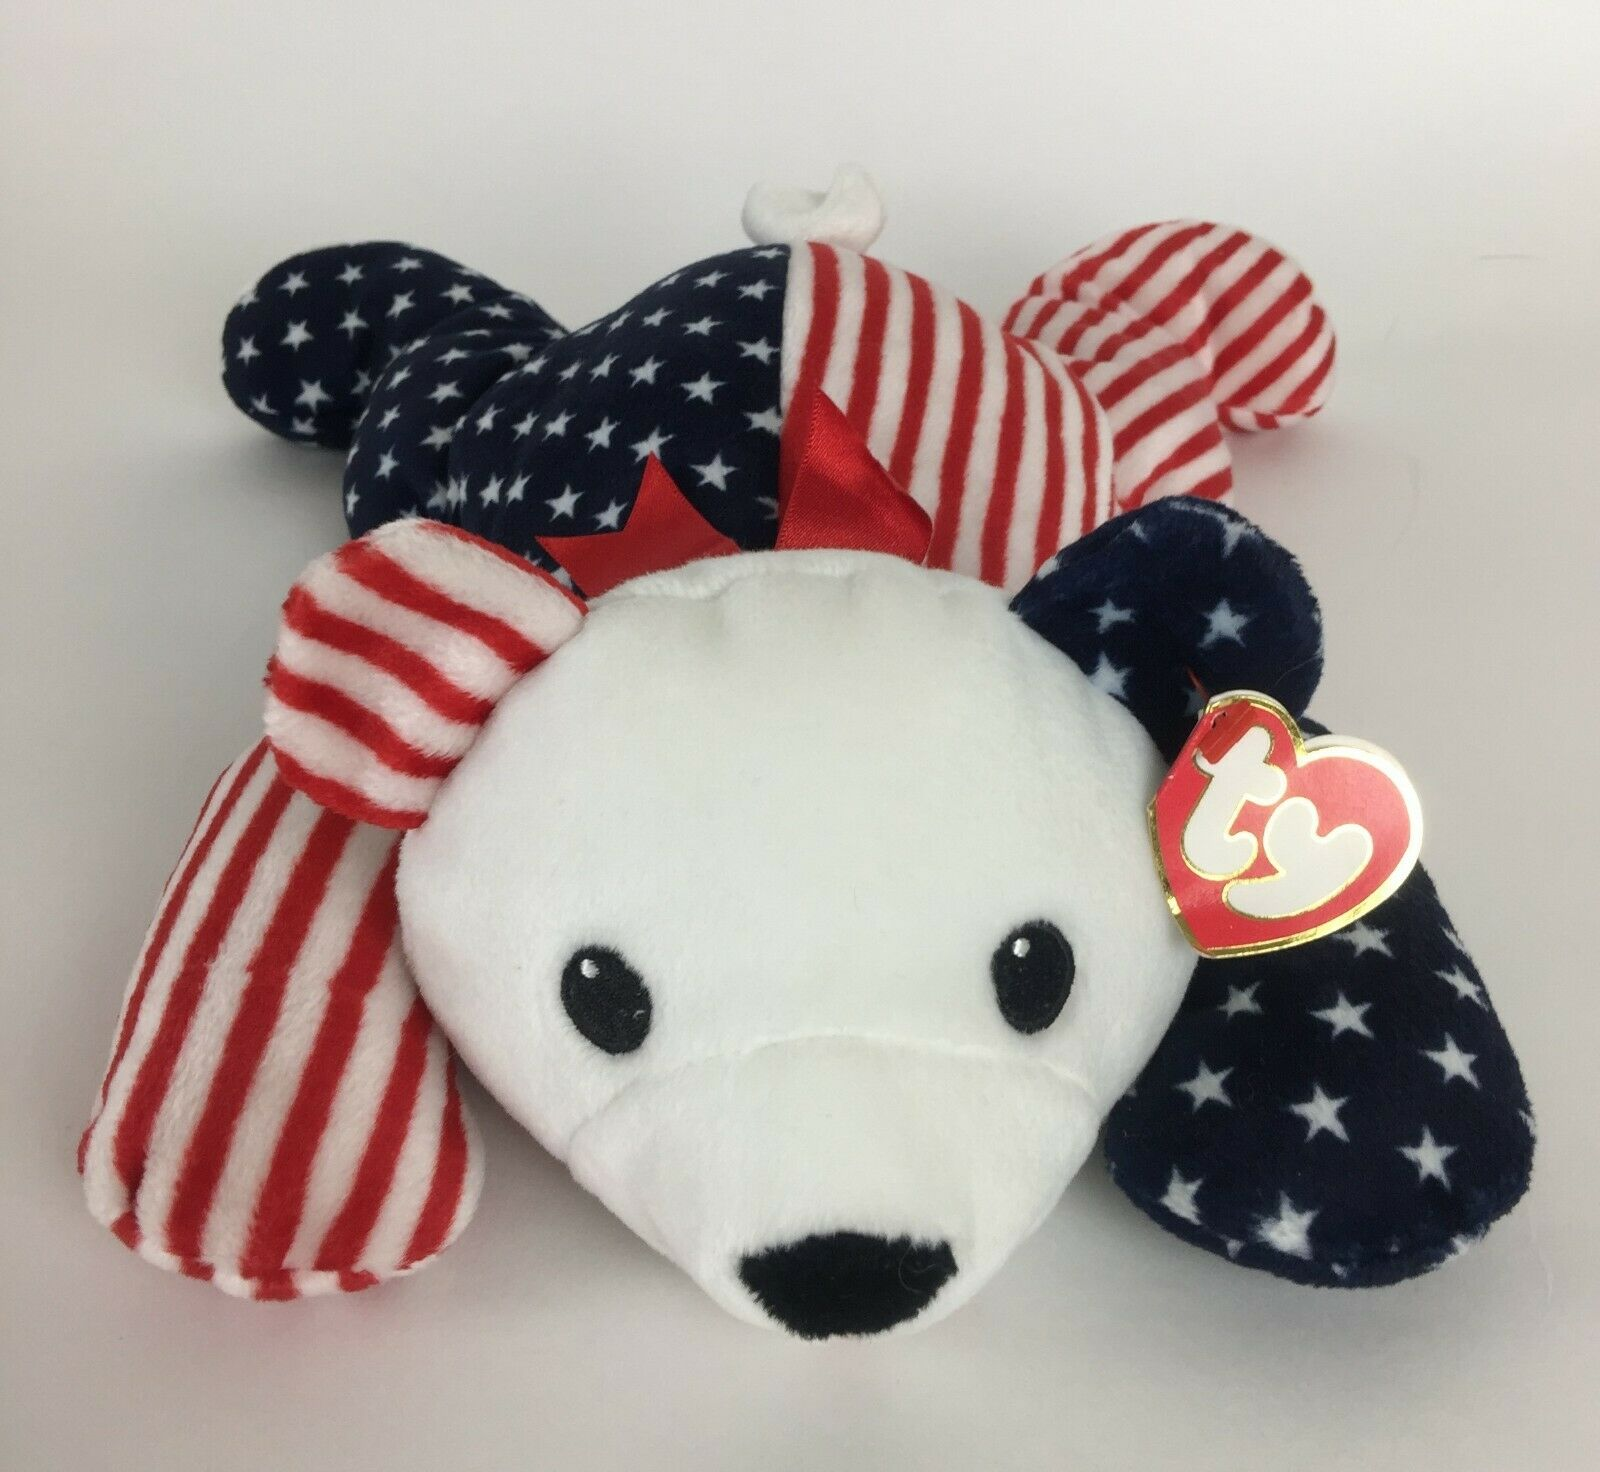 Ty Pillow Pals Sparkler Bear Plush 1999 With Tag Red White Blue Stripes Stars